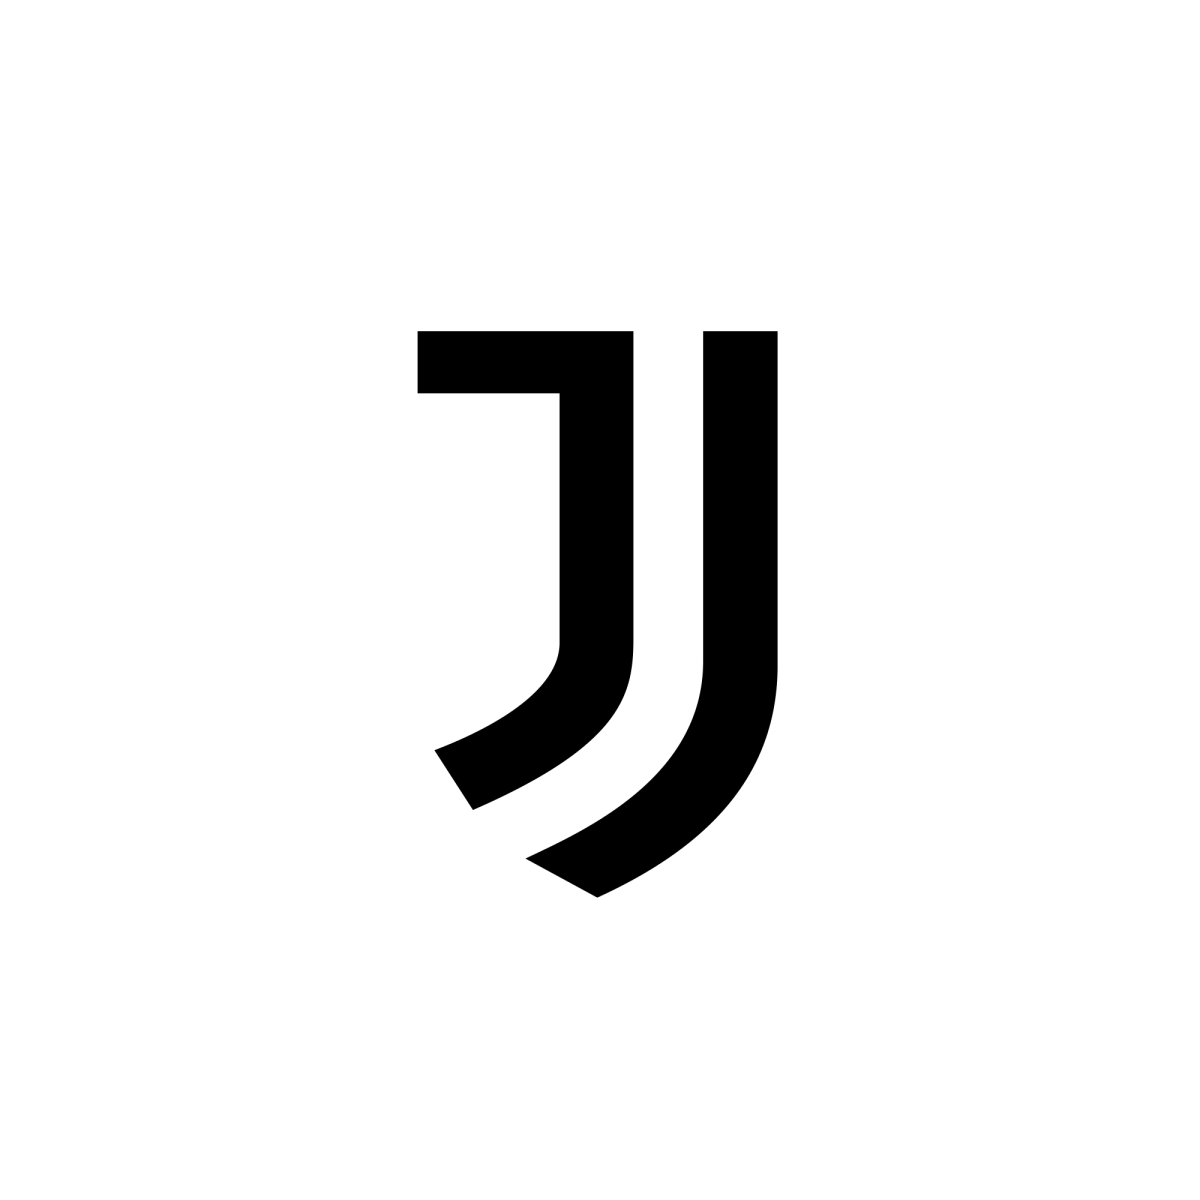 juventus svg logo letter logo single letter logo sports brand logos juventus svg logo letter logo single